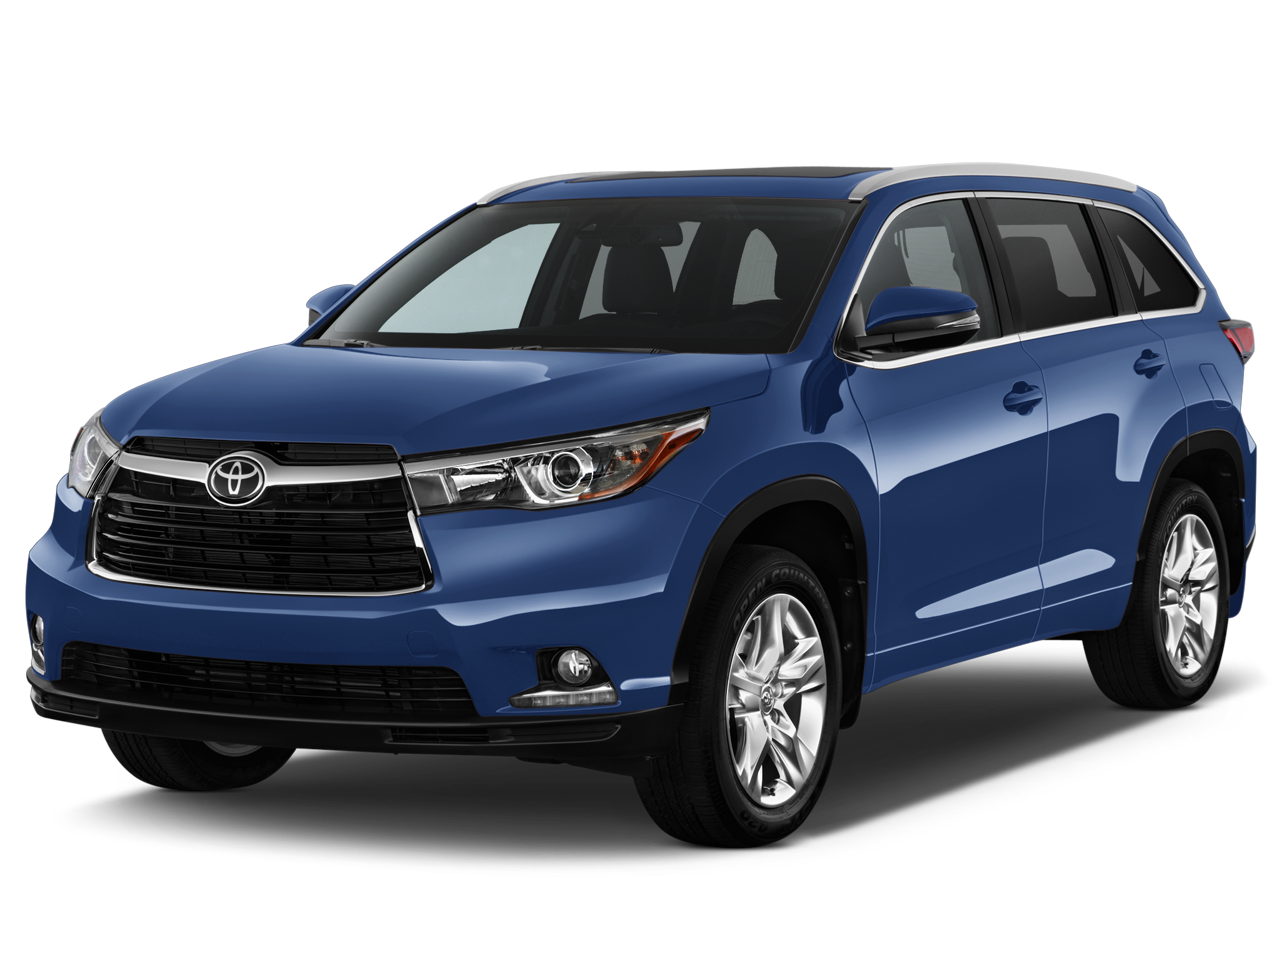 new 2016 toyota highlander limited platinum near morristown nj toyota of morristown. Black Bedroom Furniture Sets. Home Design Ideas